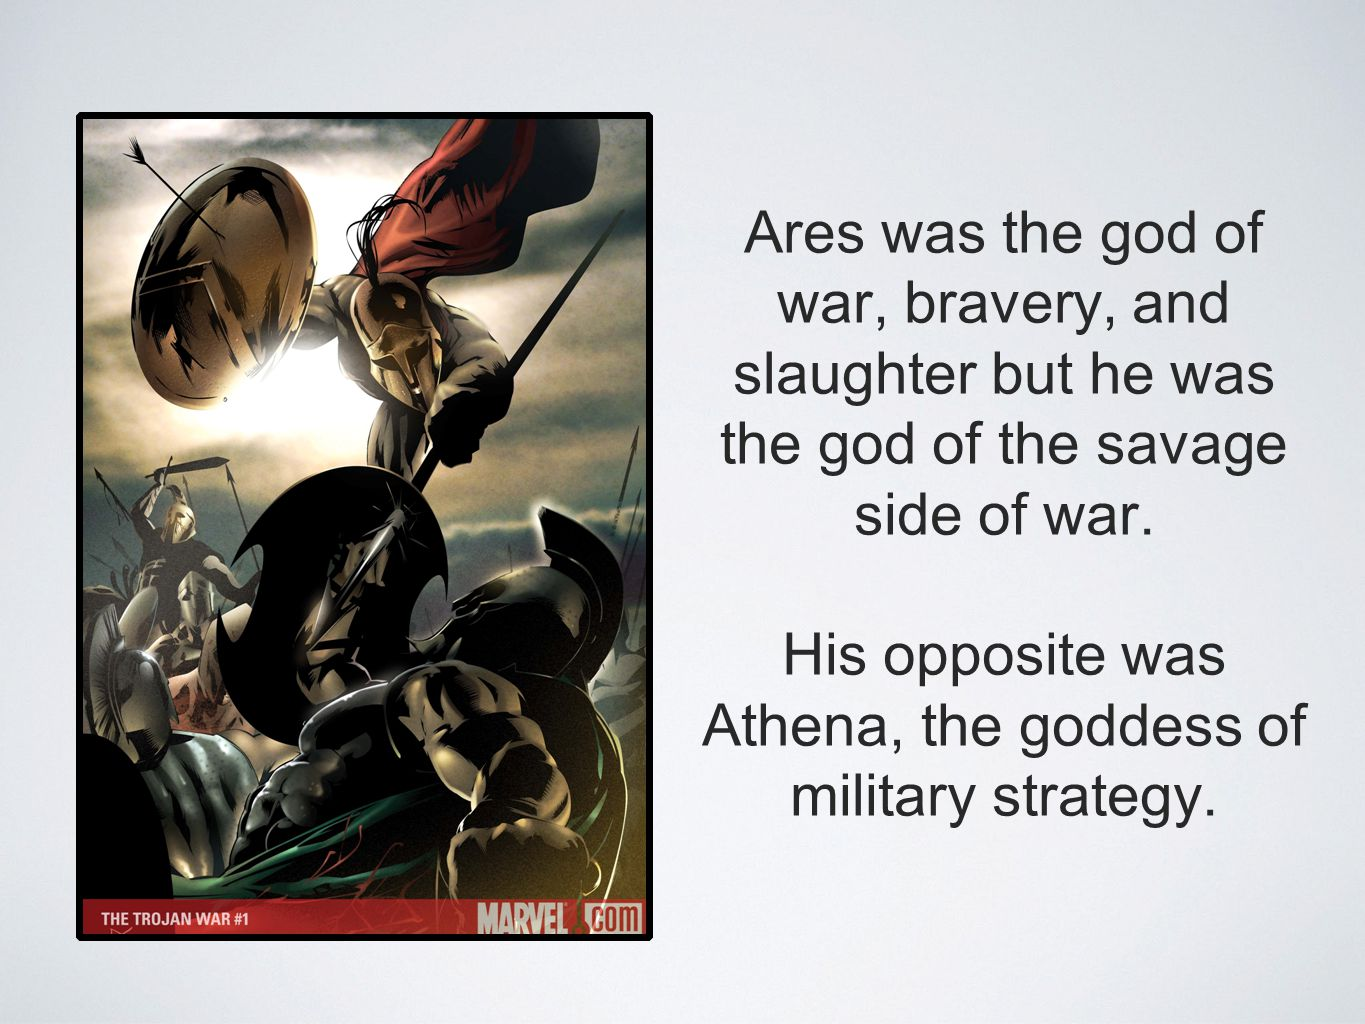 His opposite was Athena, the goddess of military strategy.